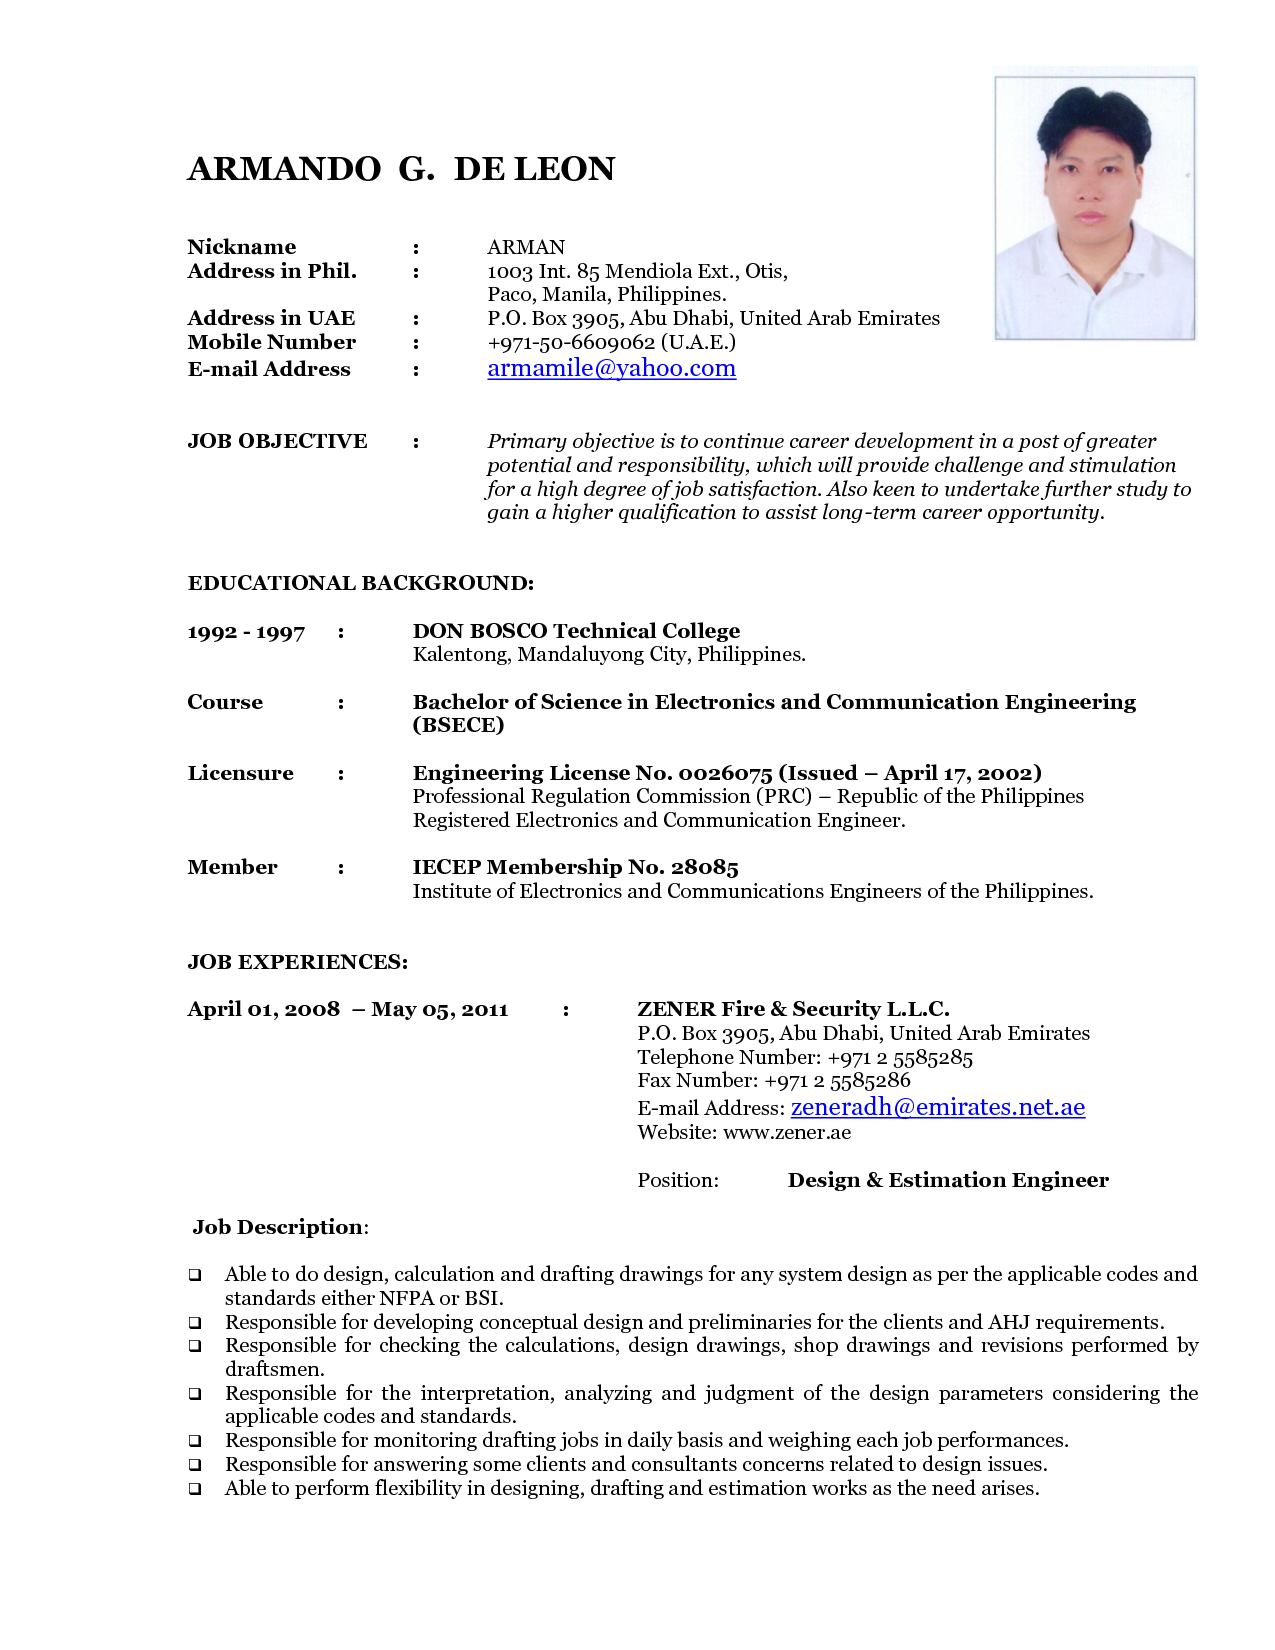 Cv Template Latest Latest resume format, Resume format